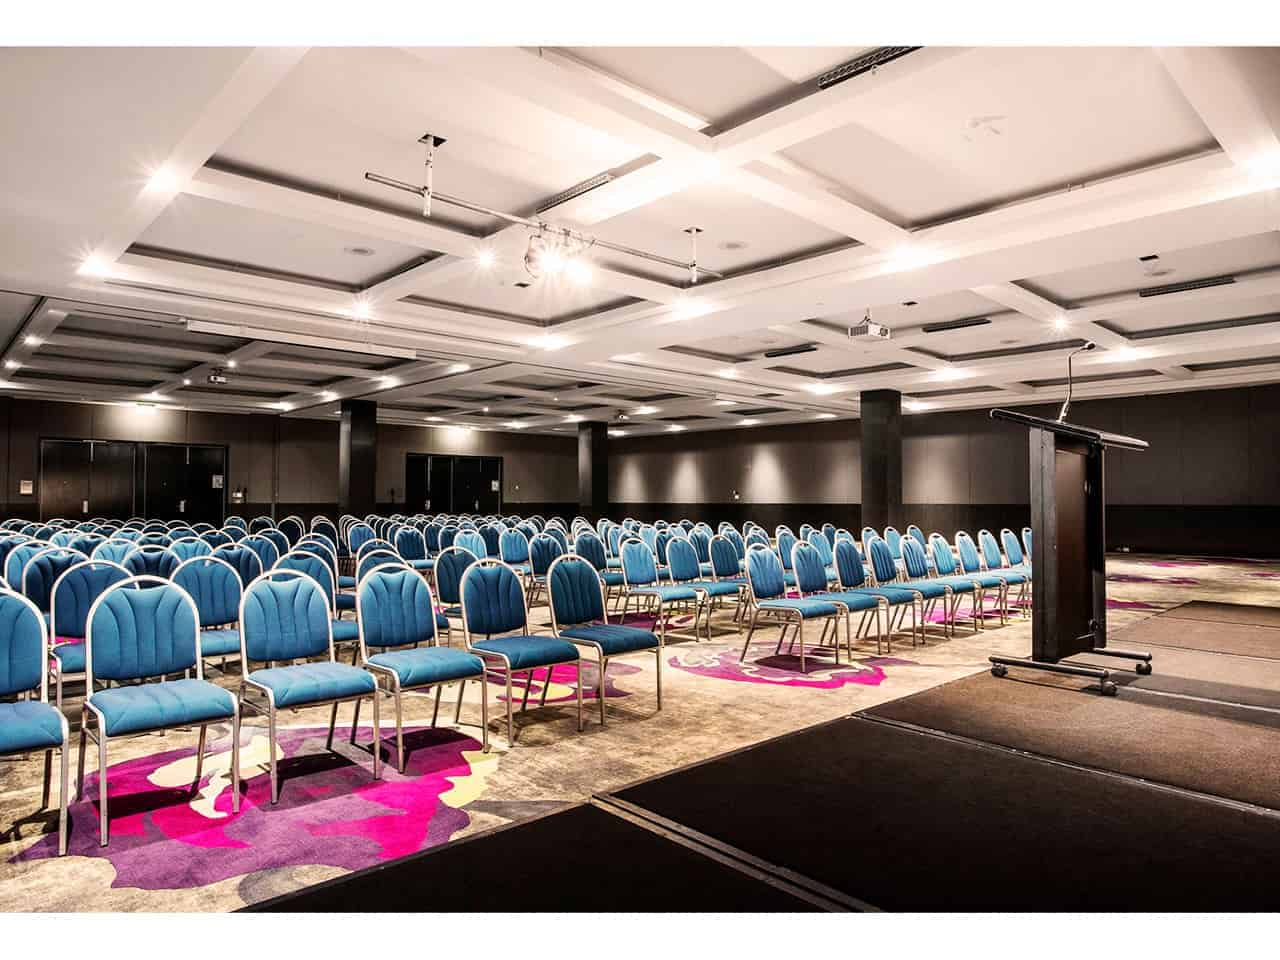 Large venue for functions